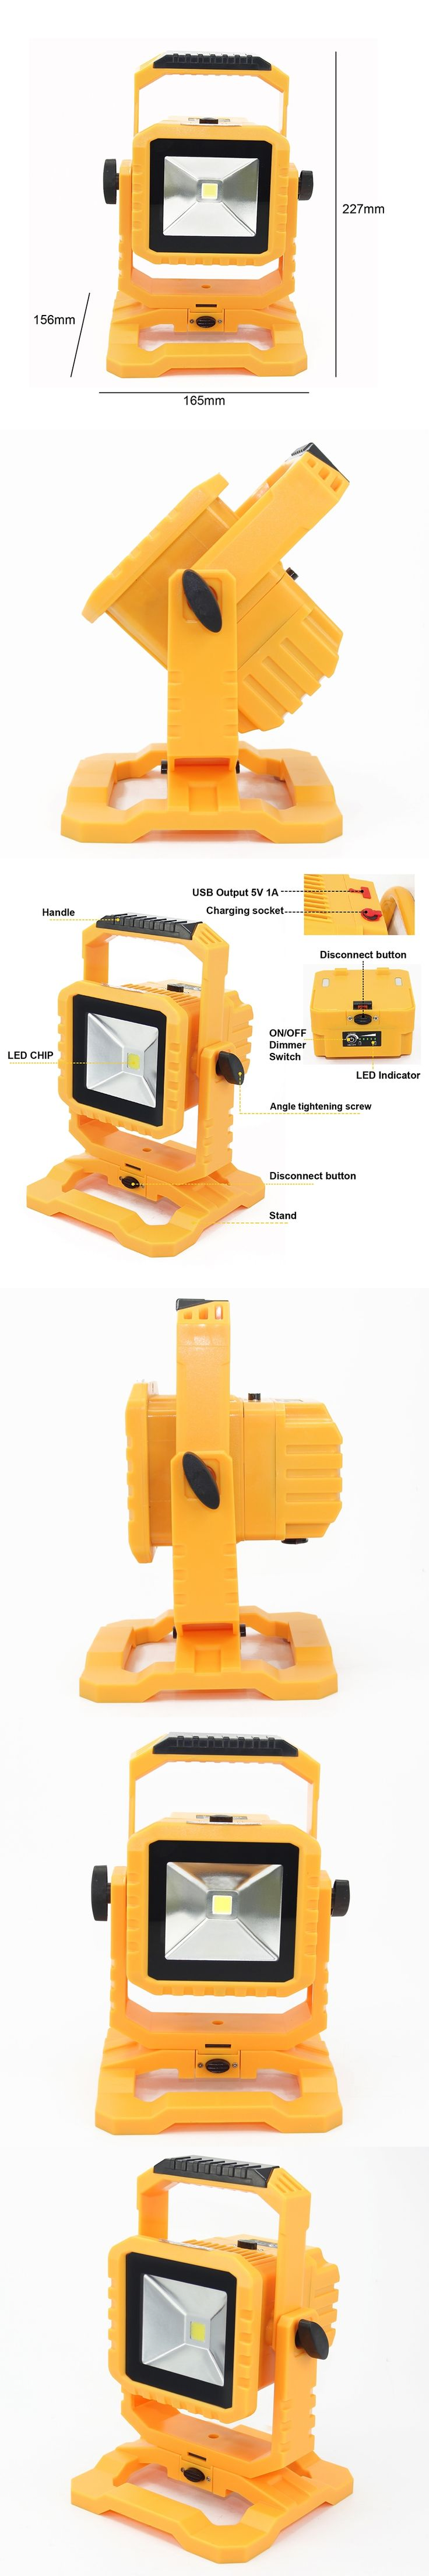 2pcs/lot IP65 LED Flood Light 10W led outdoor flood light rechargeable with detachable battery and dimmable switch free shipping